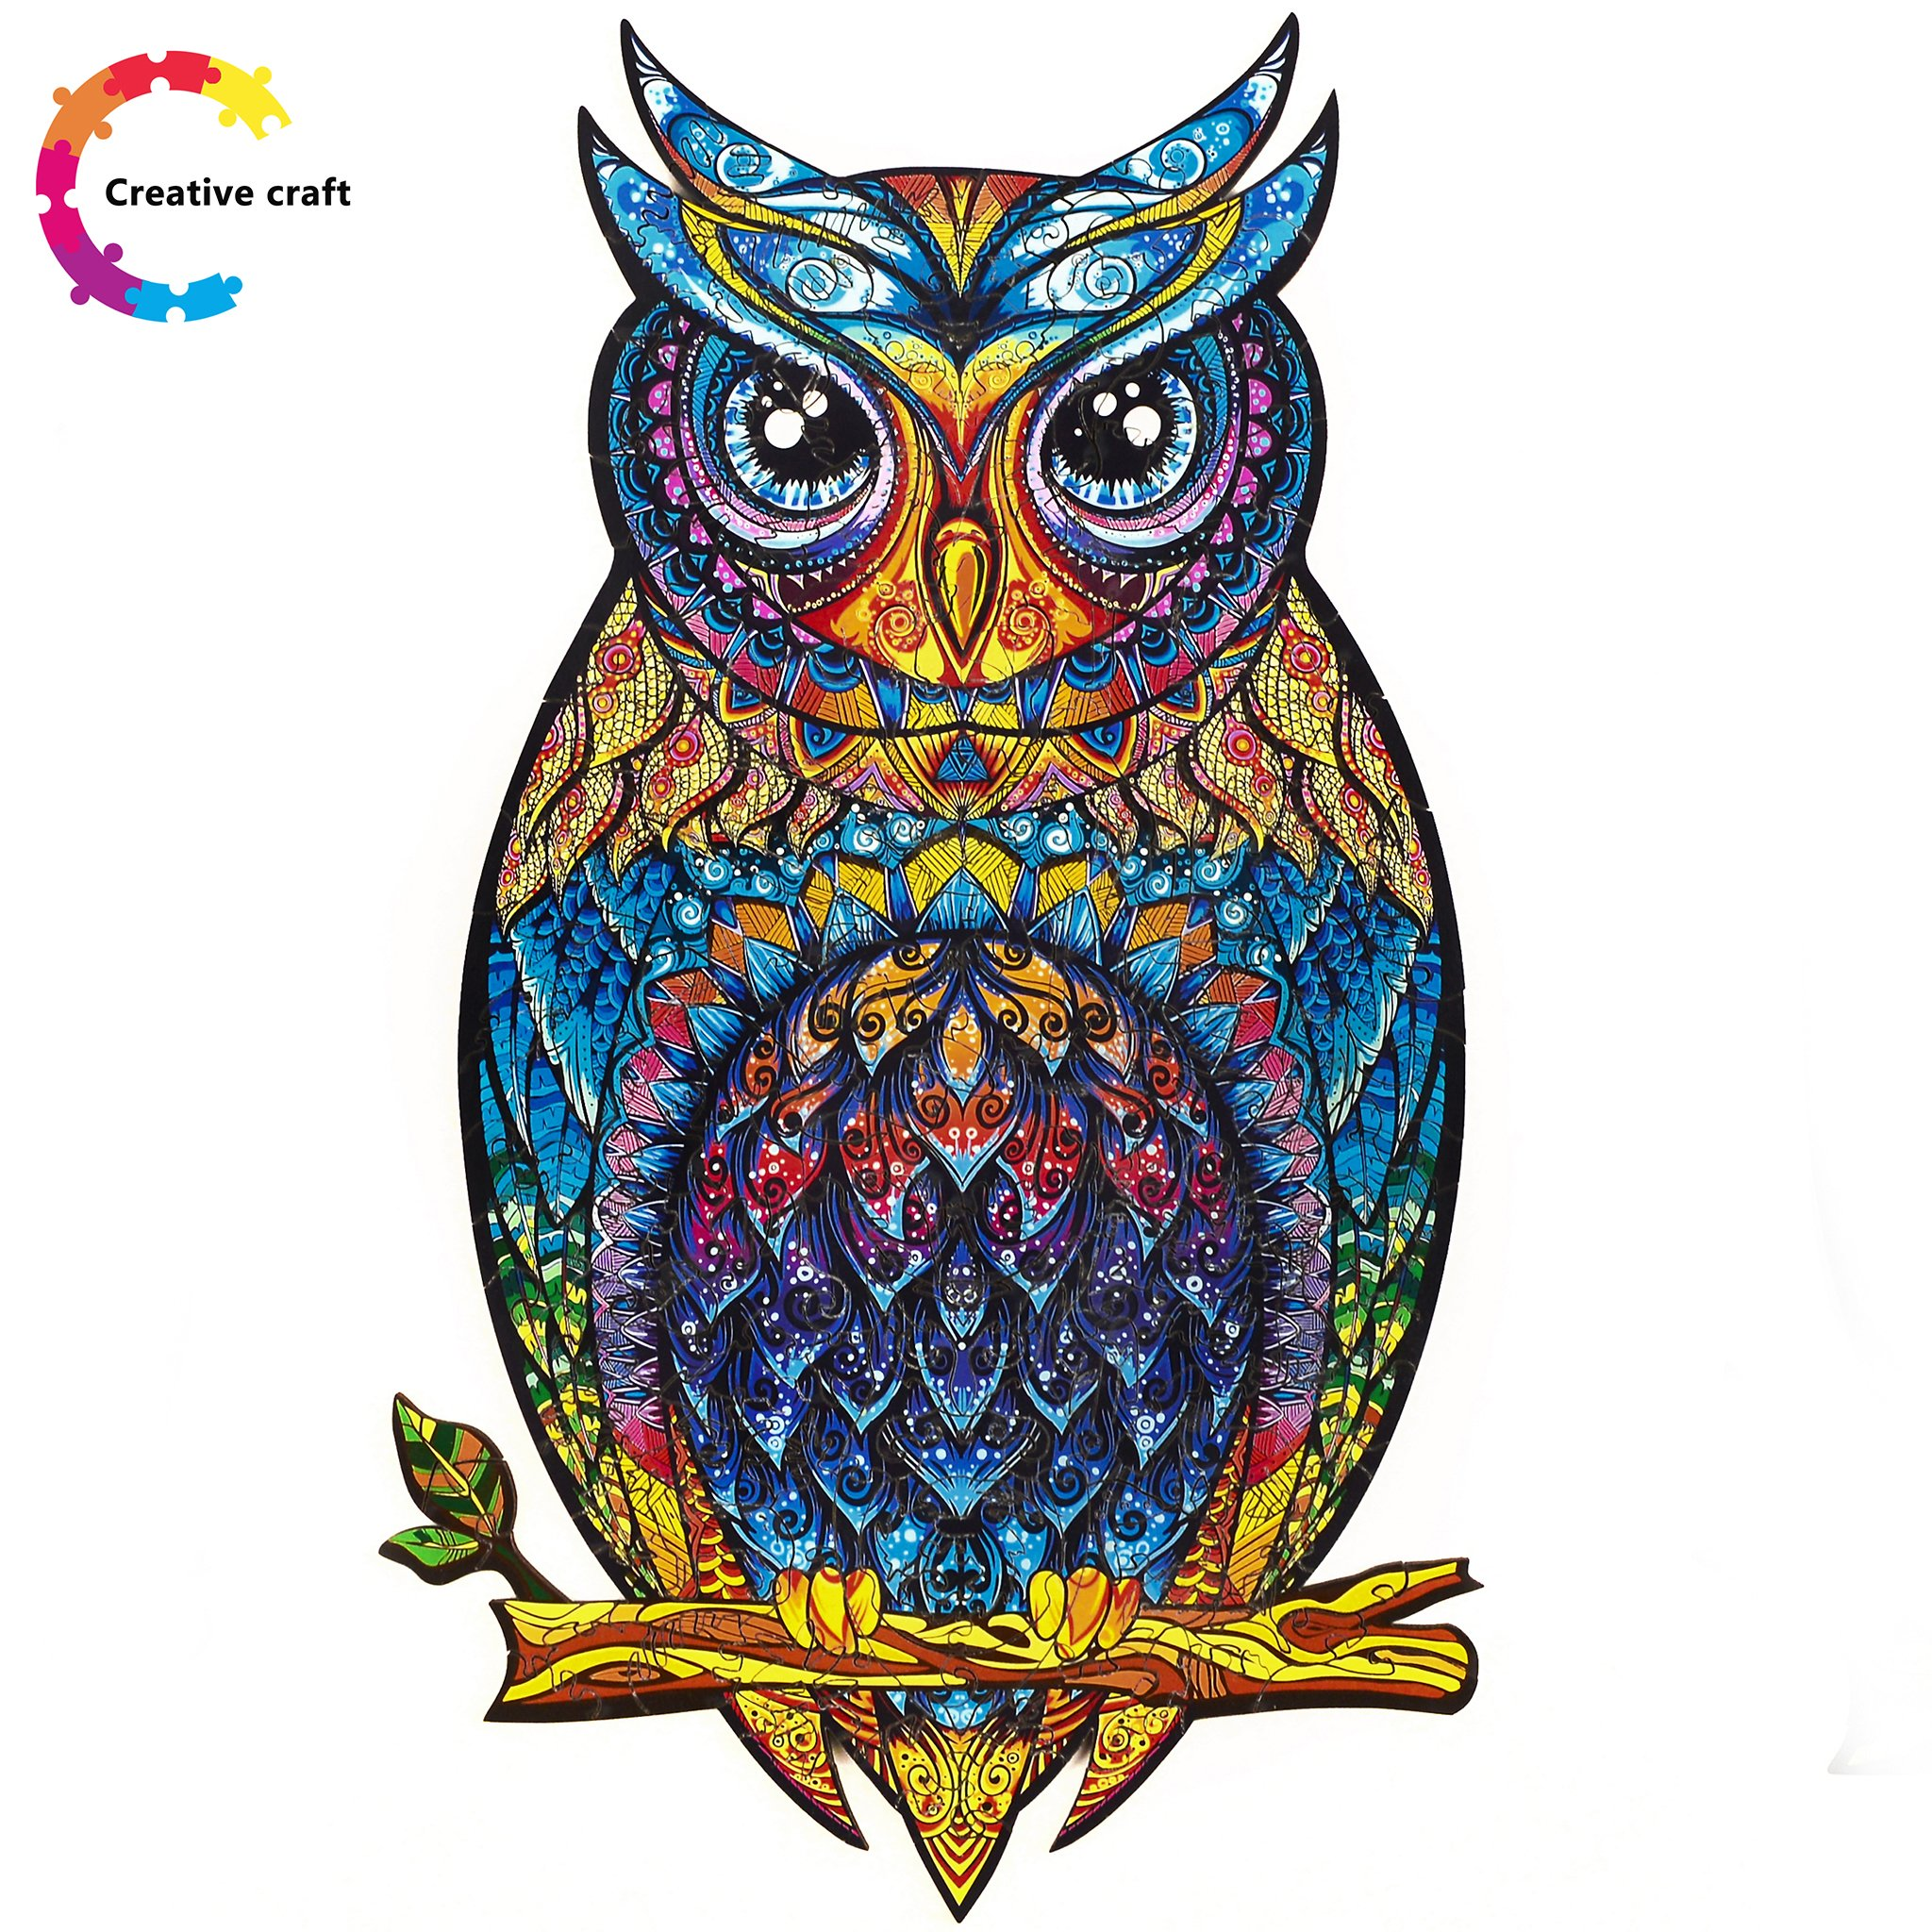 Wooden Jigsaw Puzzle Charming Owl-50% off